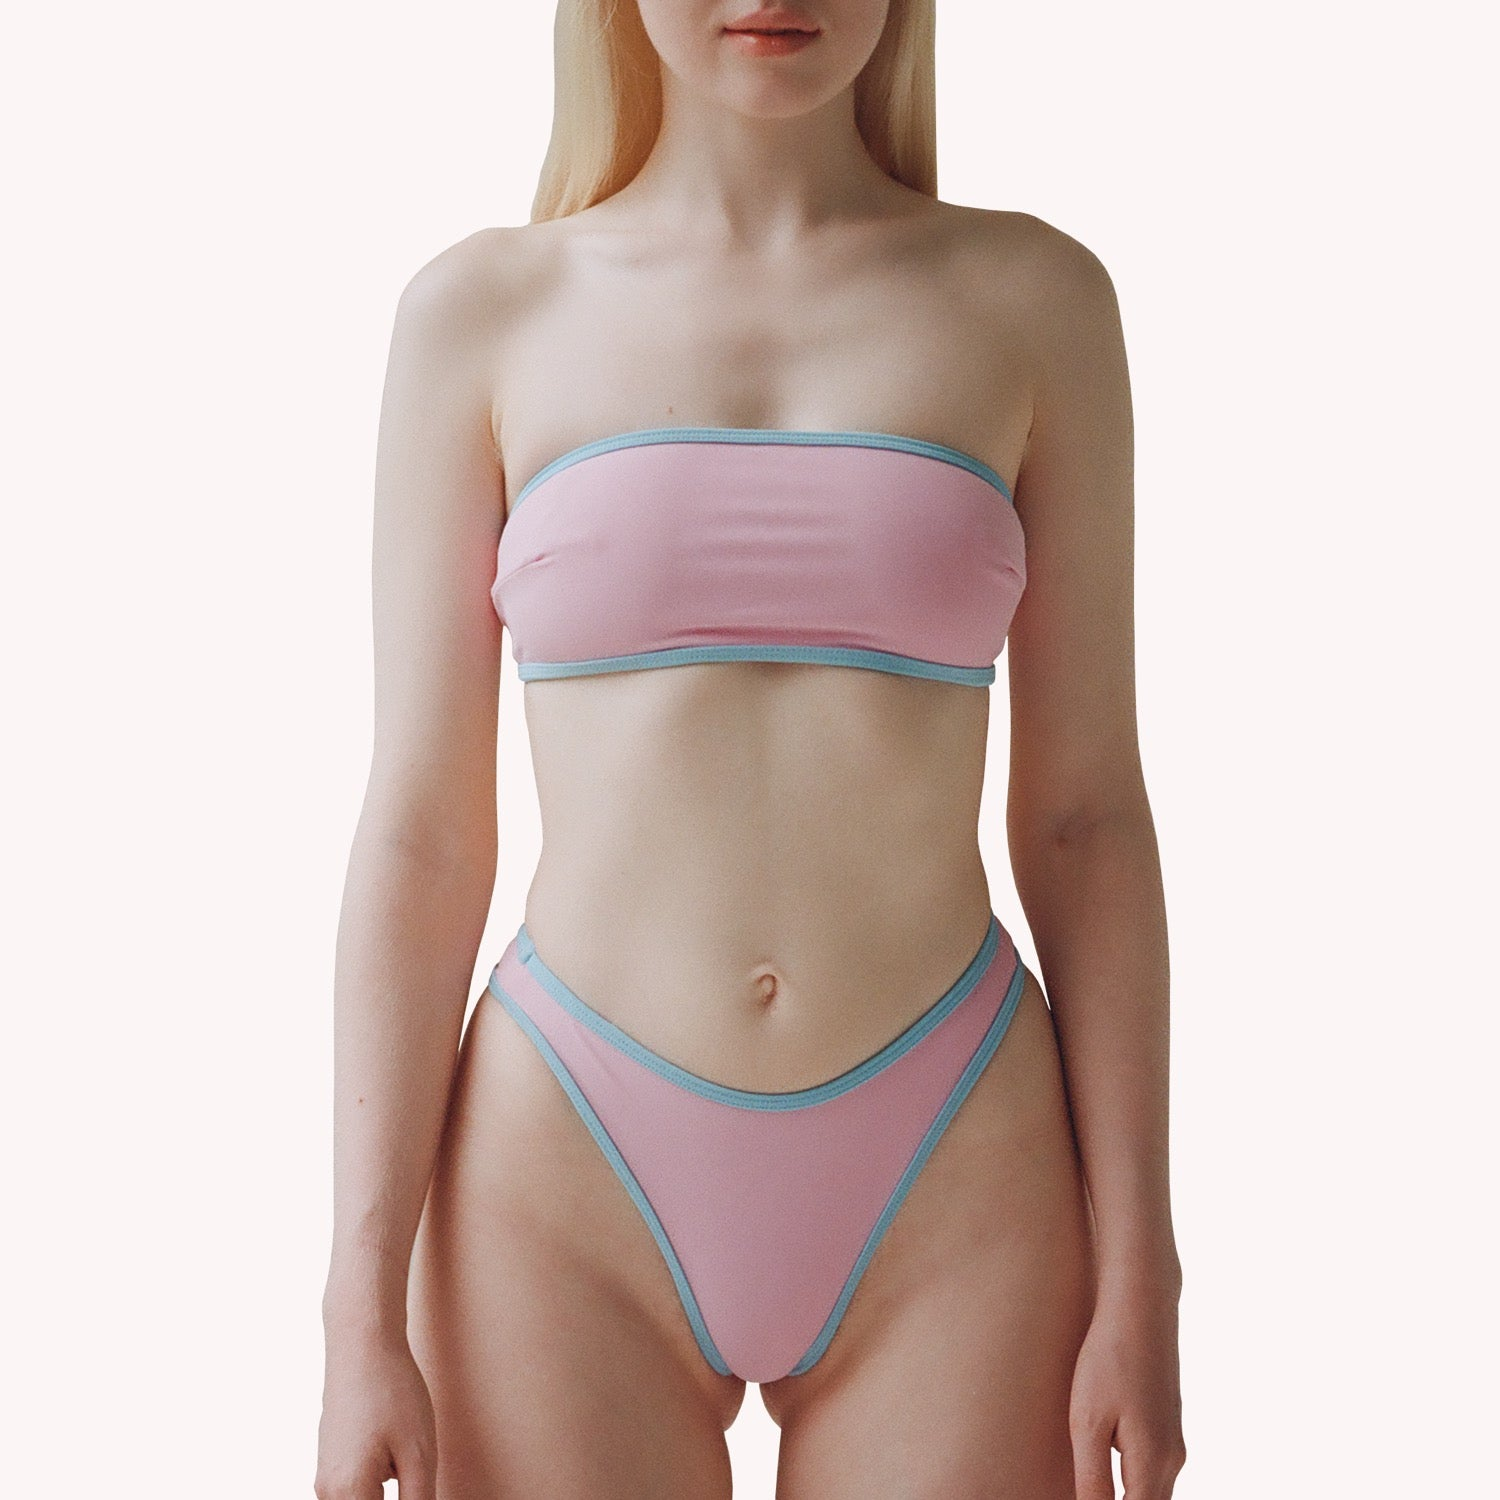 mew 2 in 1 pink thong bikini bottom